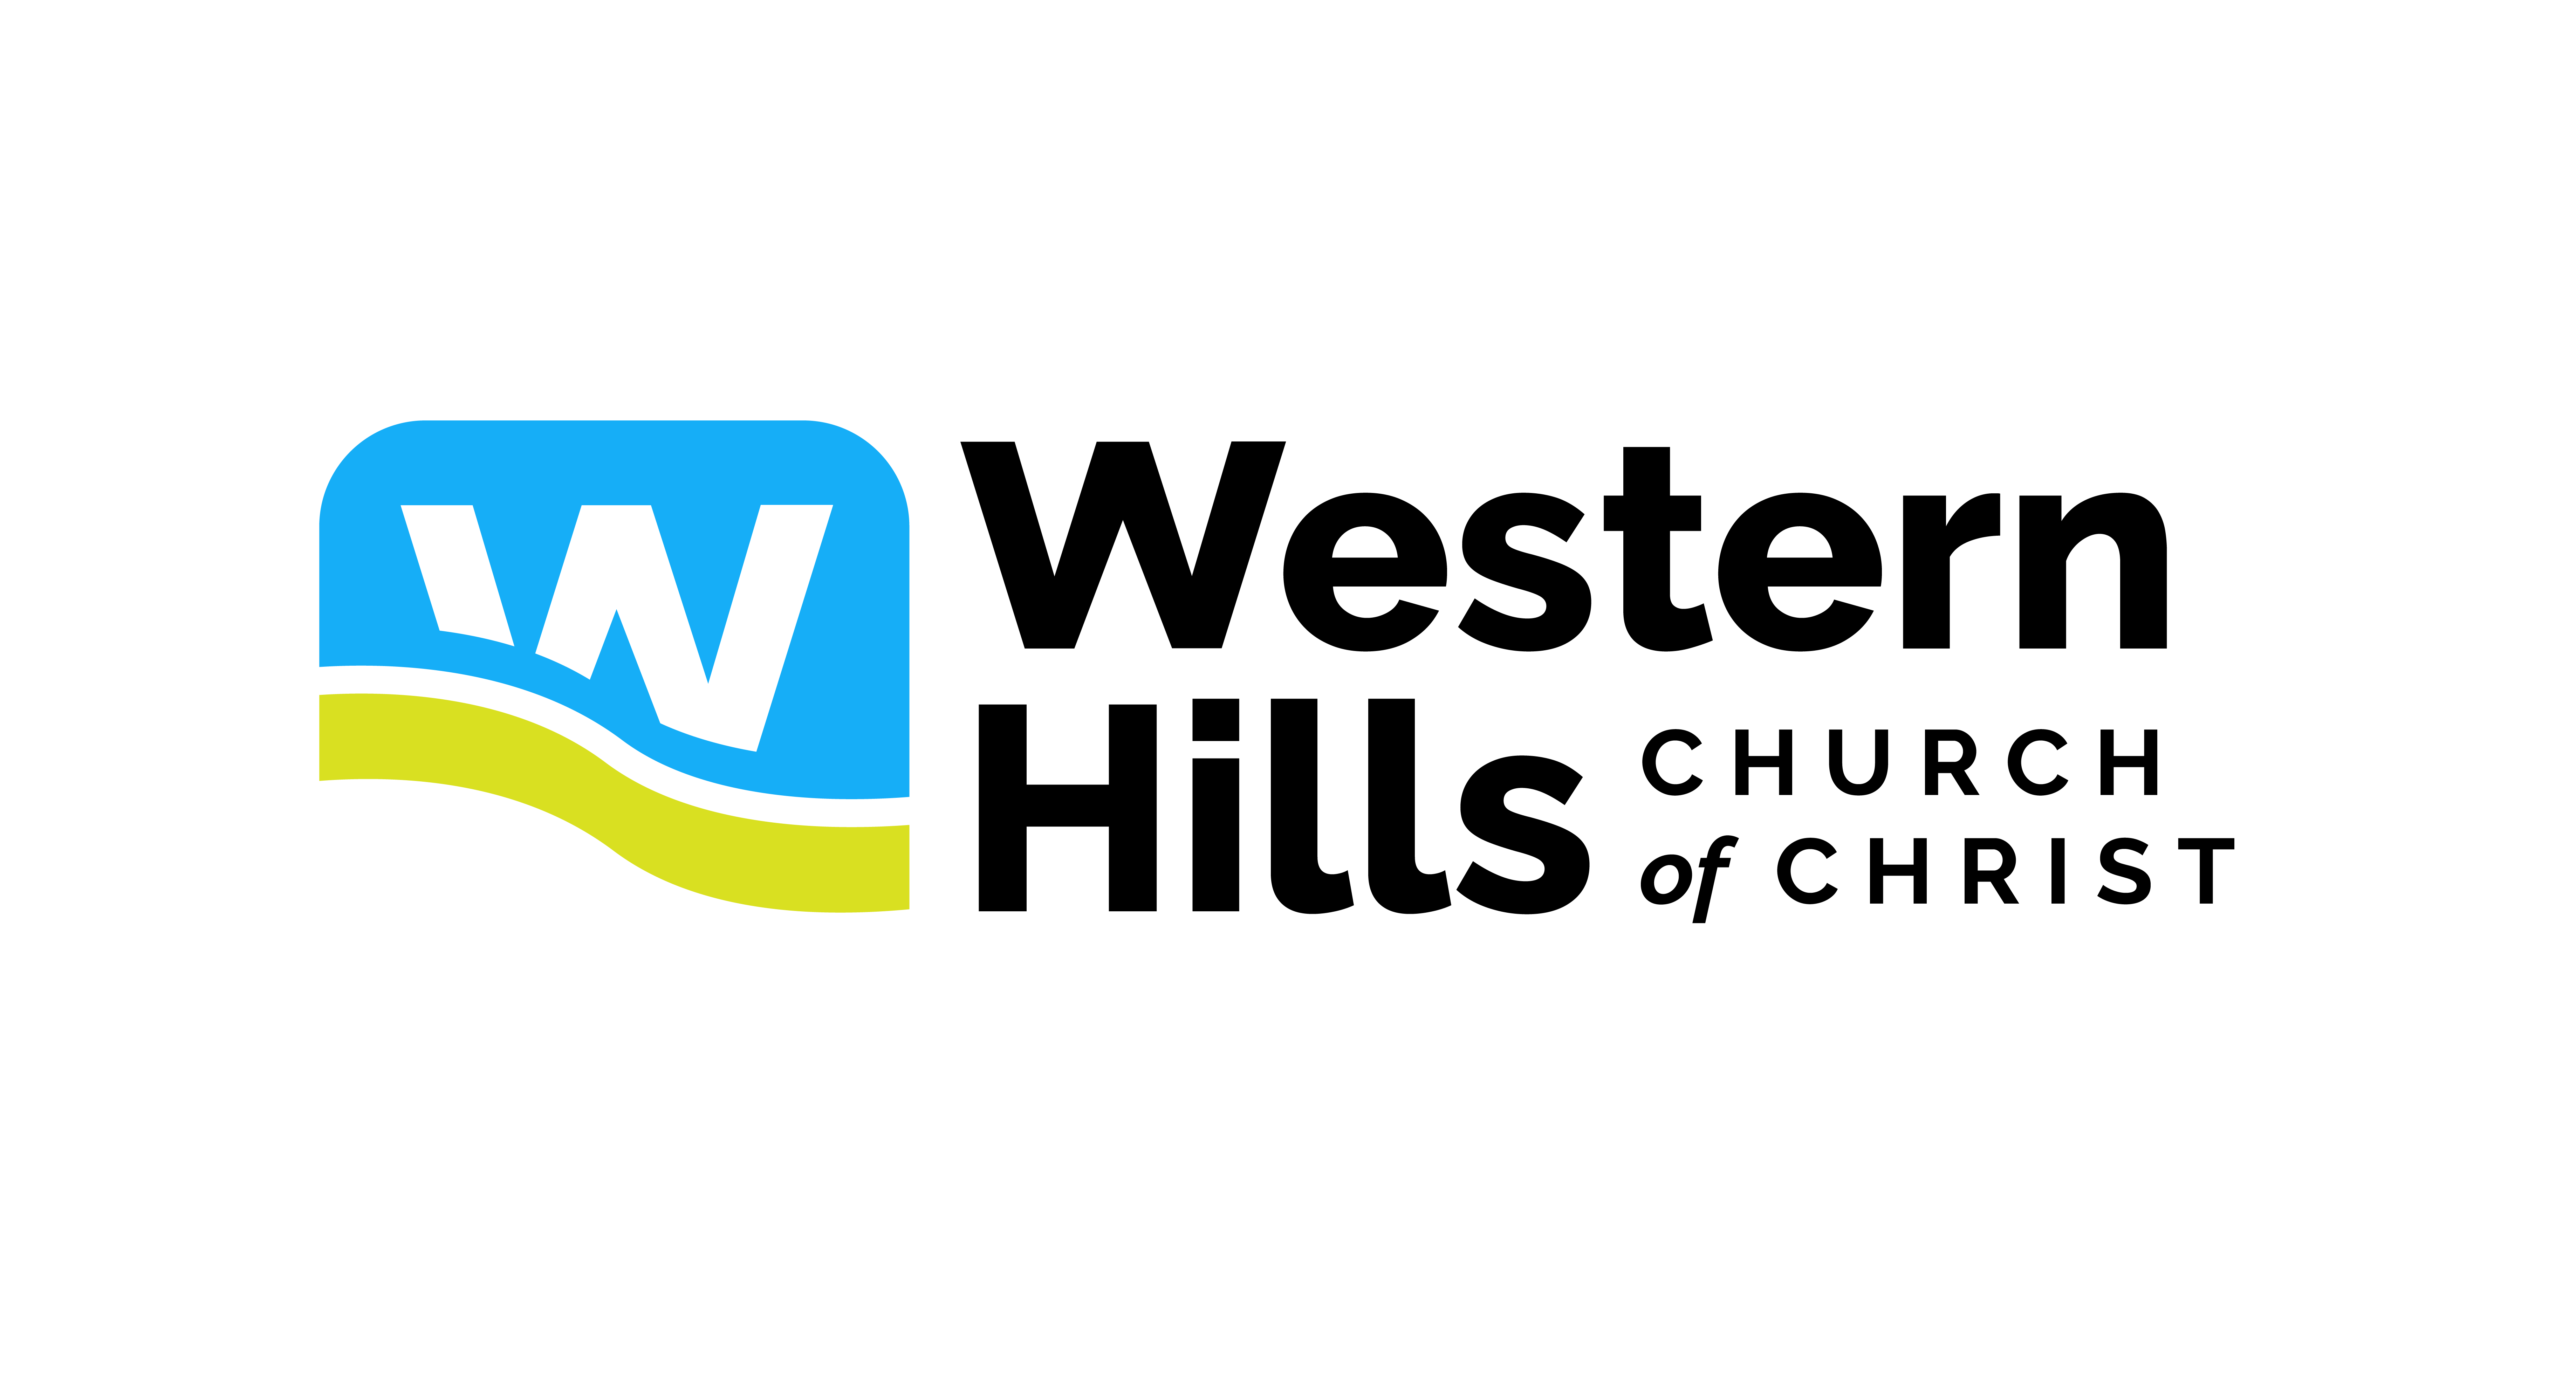 Logo and Online Service Title